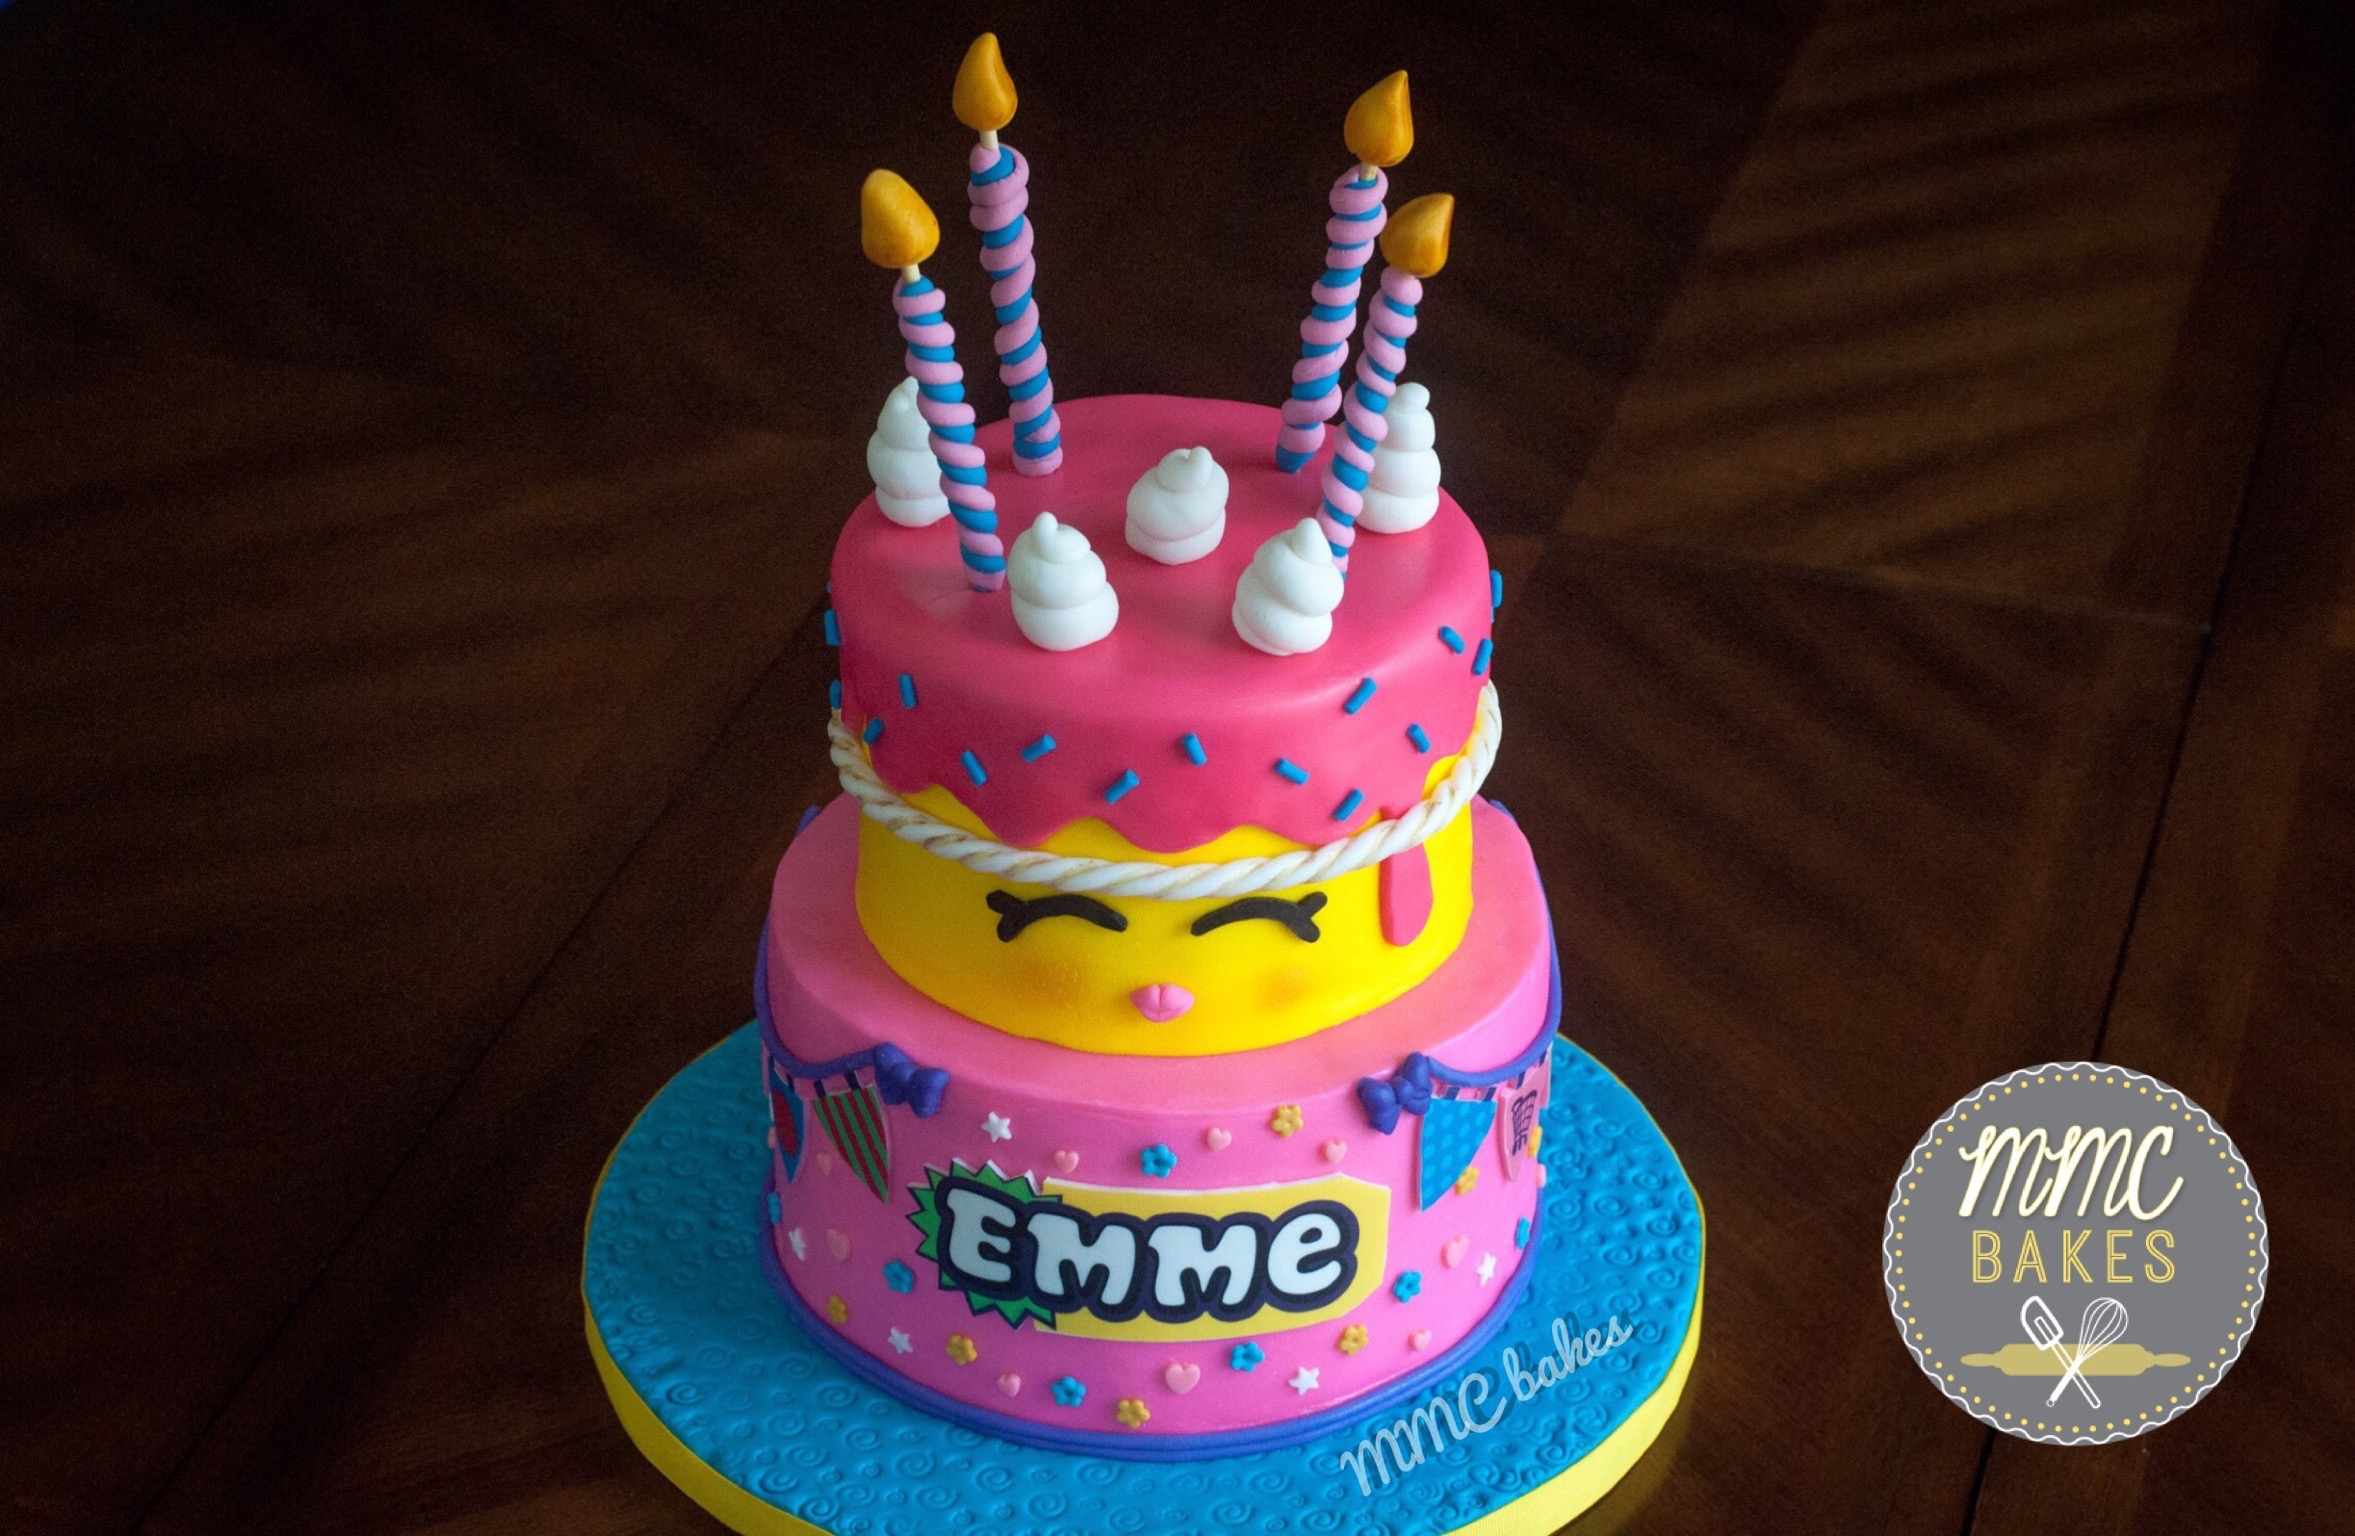 Birthday Cakes And Wishes ~ Happy birthday ecards cakes wishes sms dress recipes poem quotes